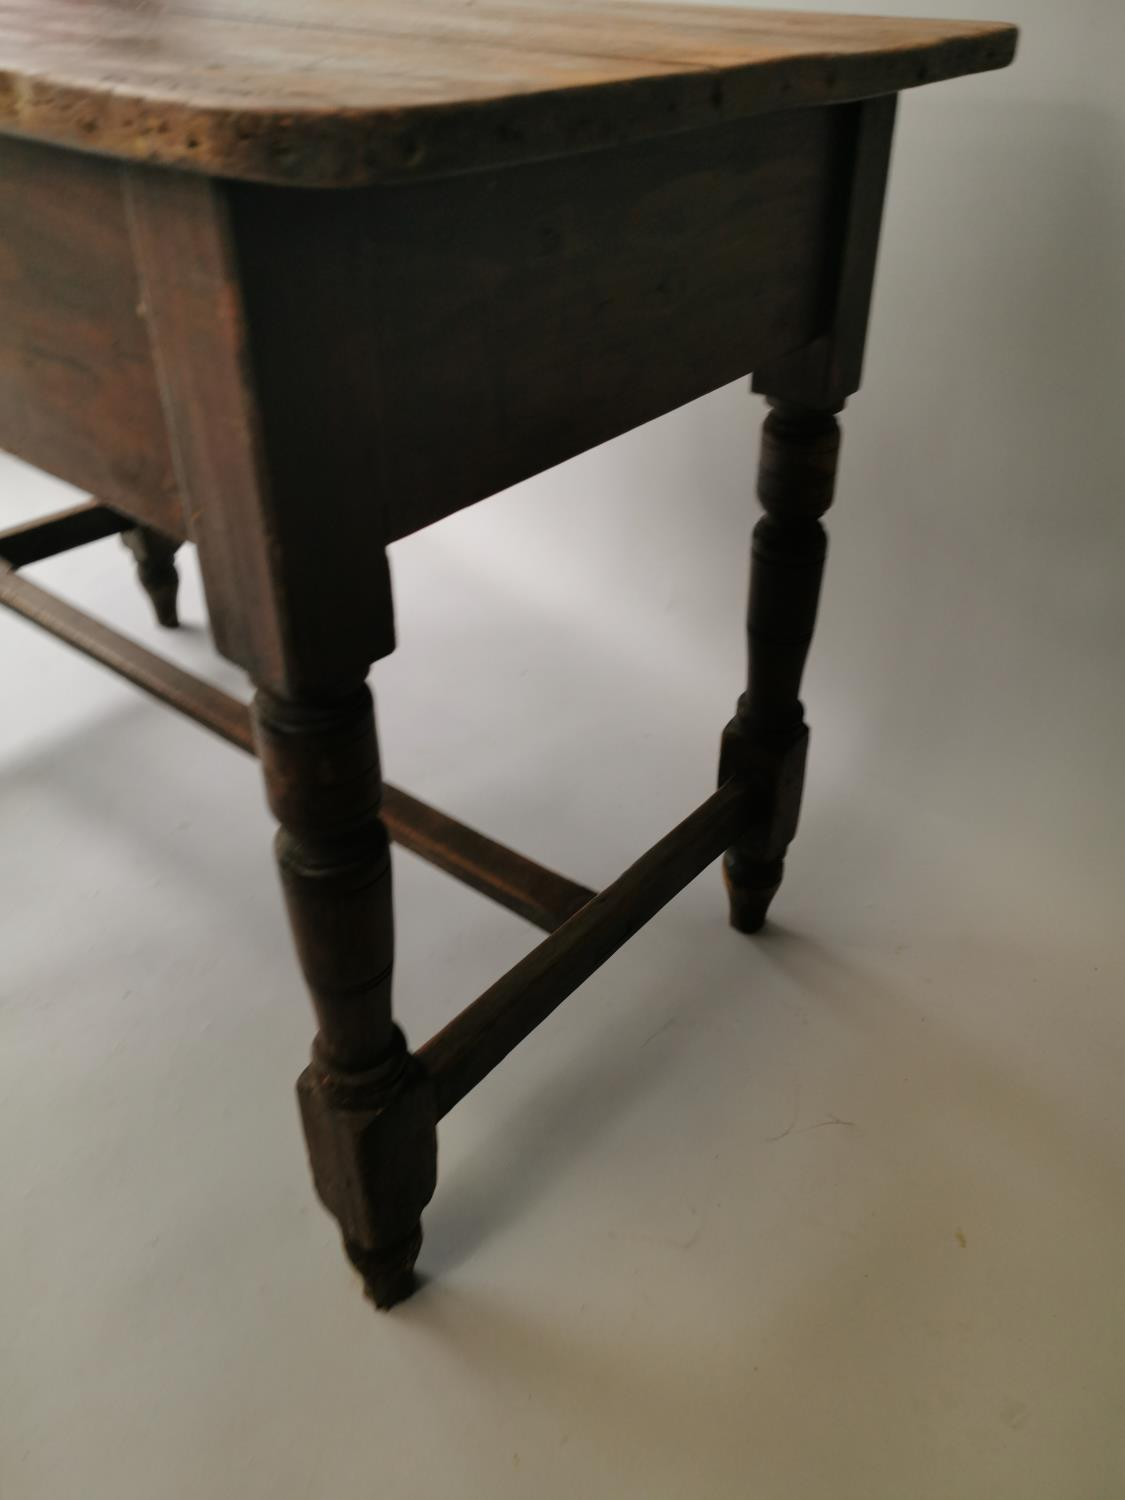 19th. C. painted pine table - Image 6 of 7